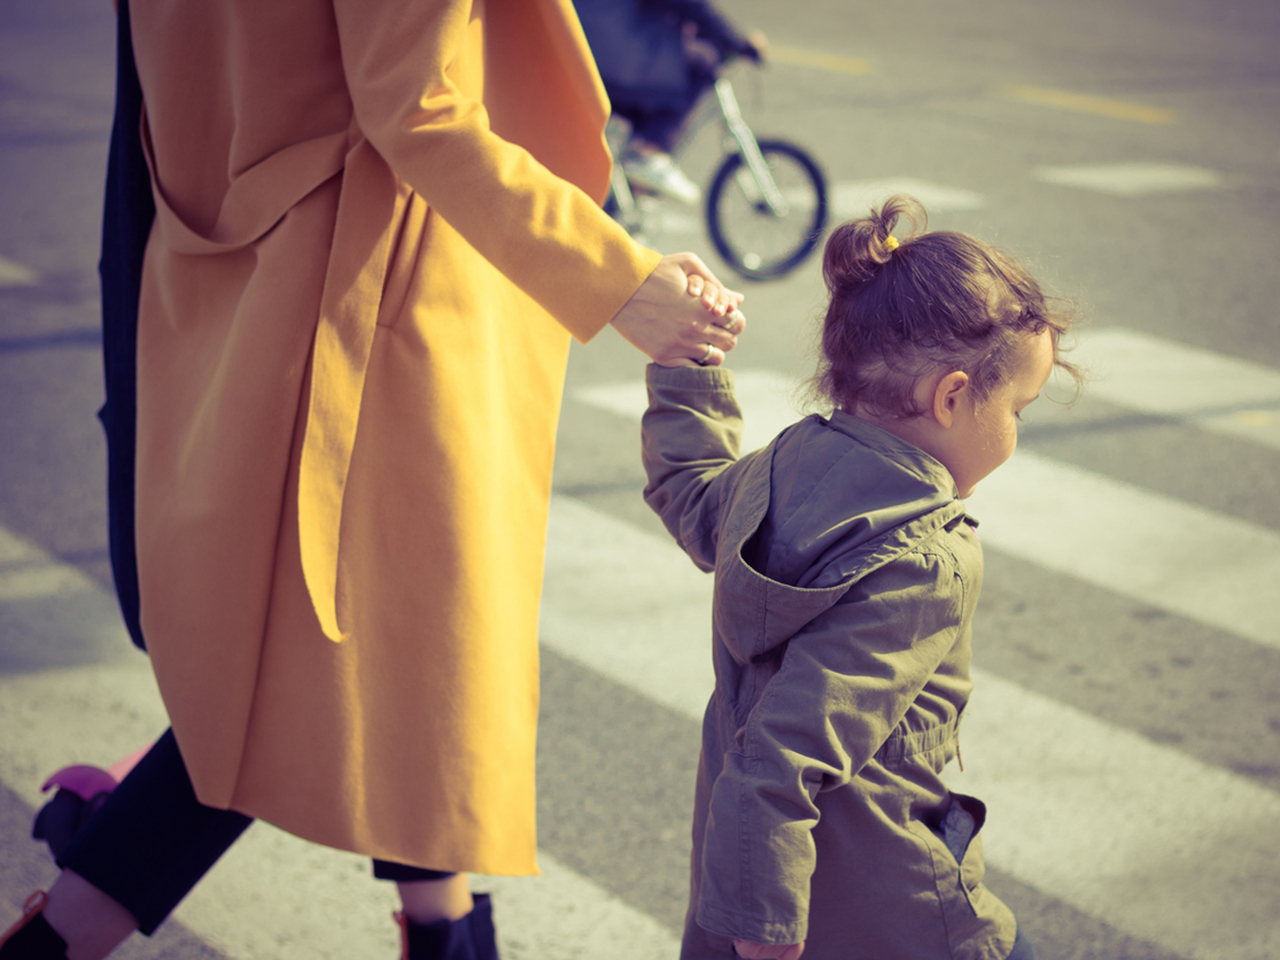 Small girl holding mother's hand while crossing the street at a crosswalk